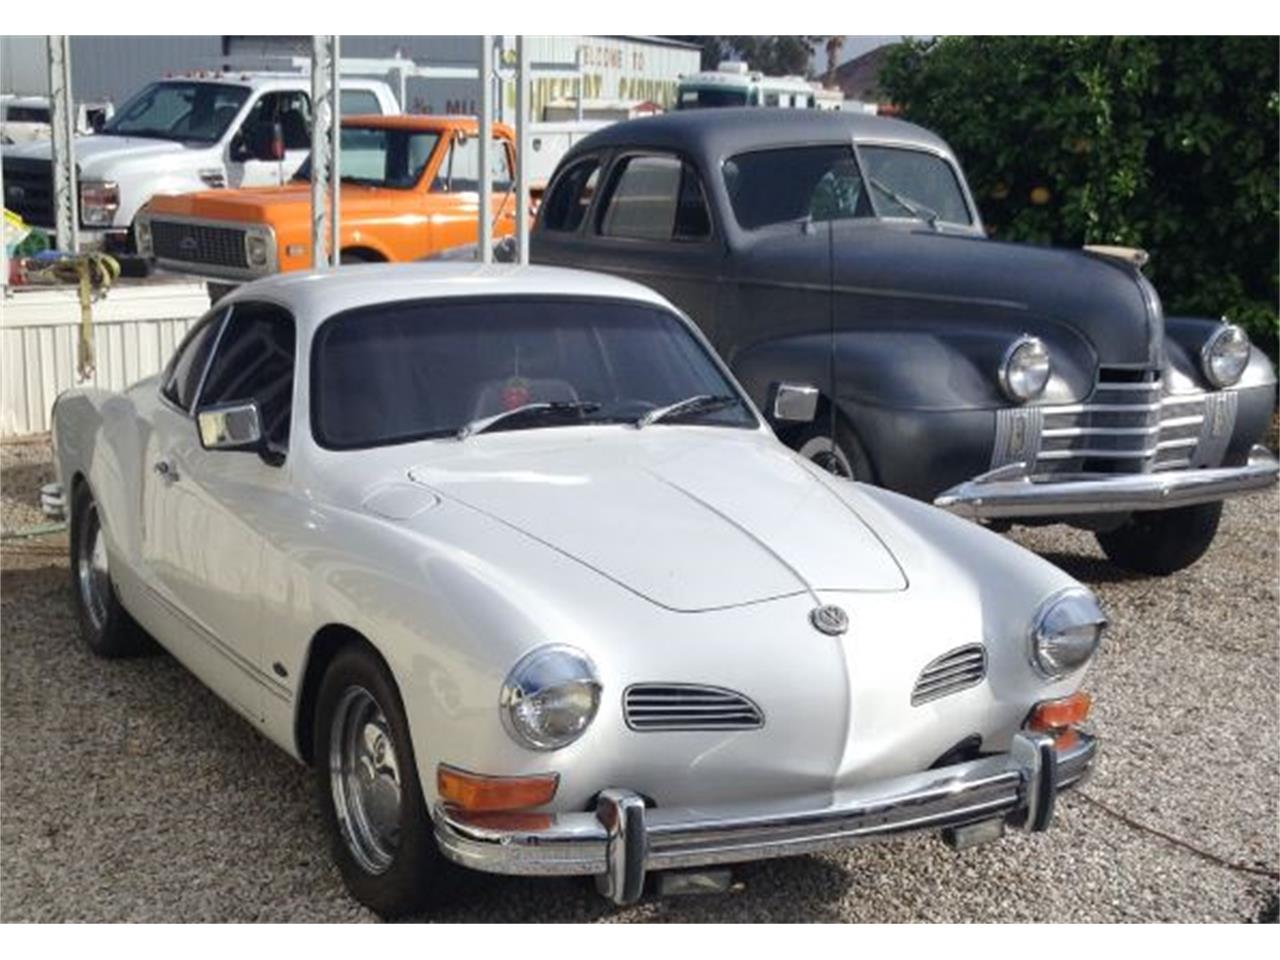 1973 Volkswagen Karmann Ghia For Sale Classiccars Com